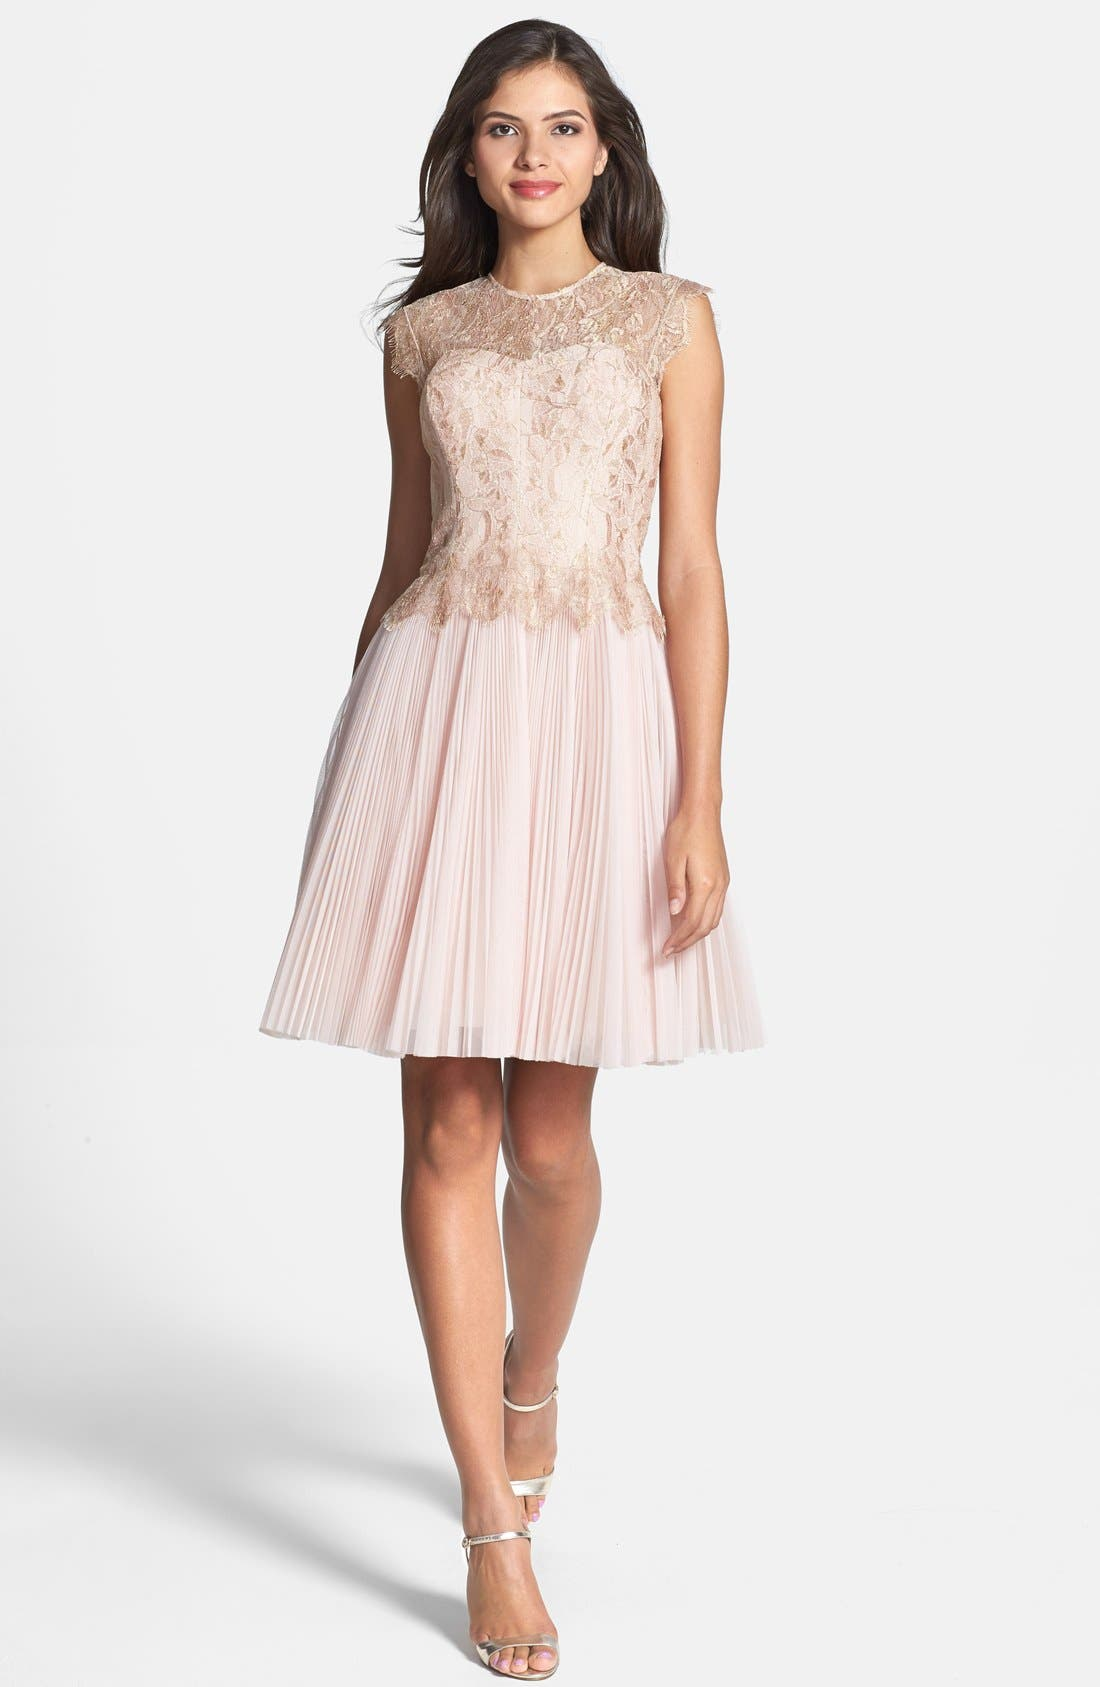 'Remma' Metallic Lace Overlay Fit & Flare Dress,                             Alternate thumbnail 3, color,                             Nude Pink